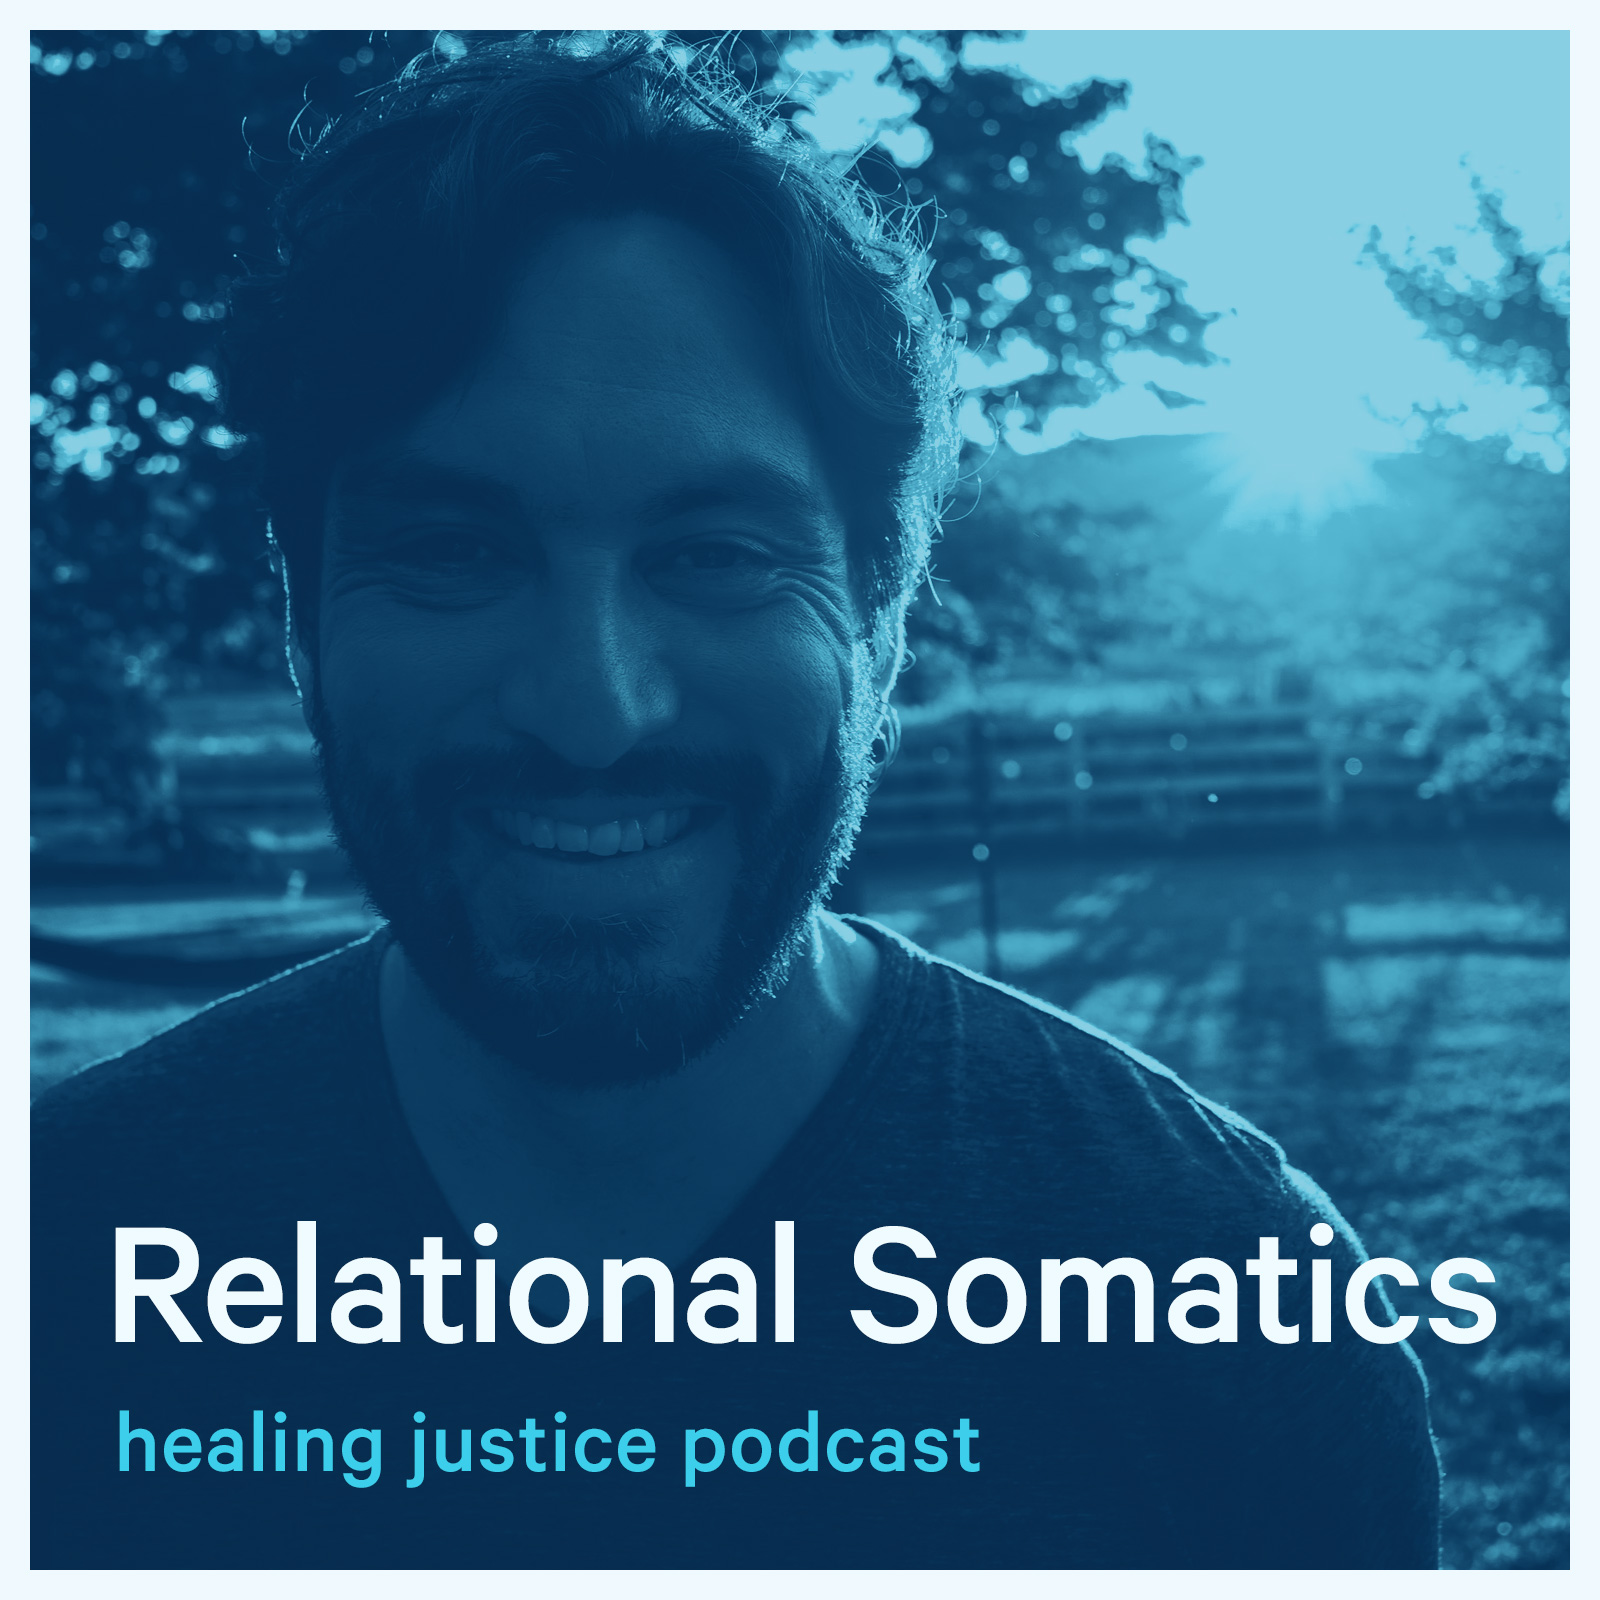 Angela Zhou Wiki all & latest episodes of healing justice podcast